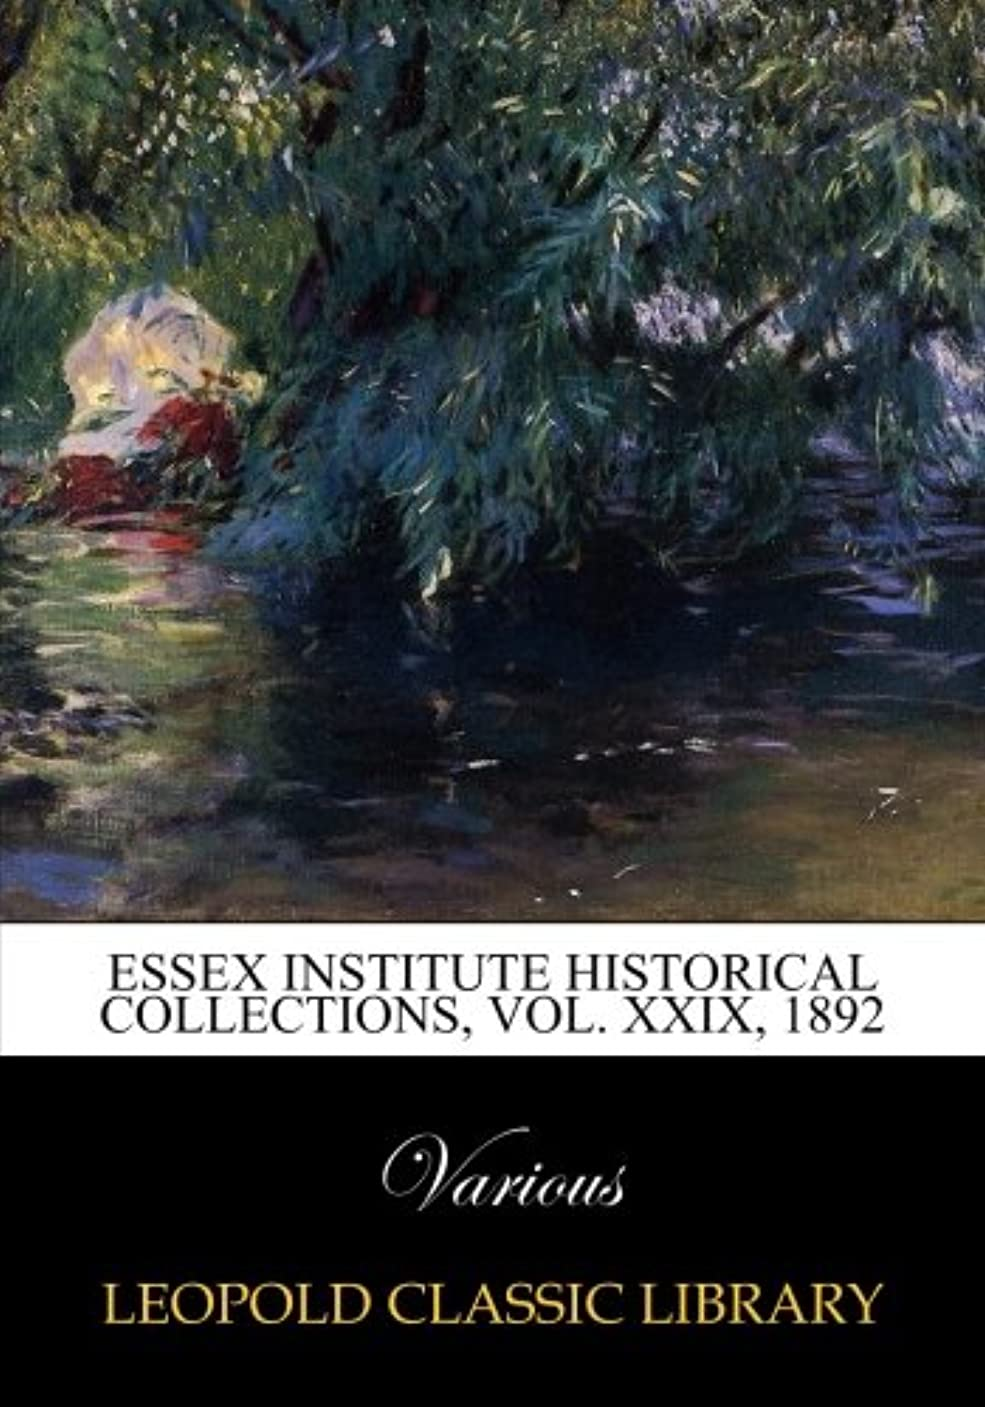 その名門満了Essex Institute historical collections, Vol. XXIX, 1892